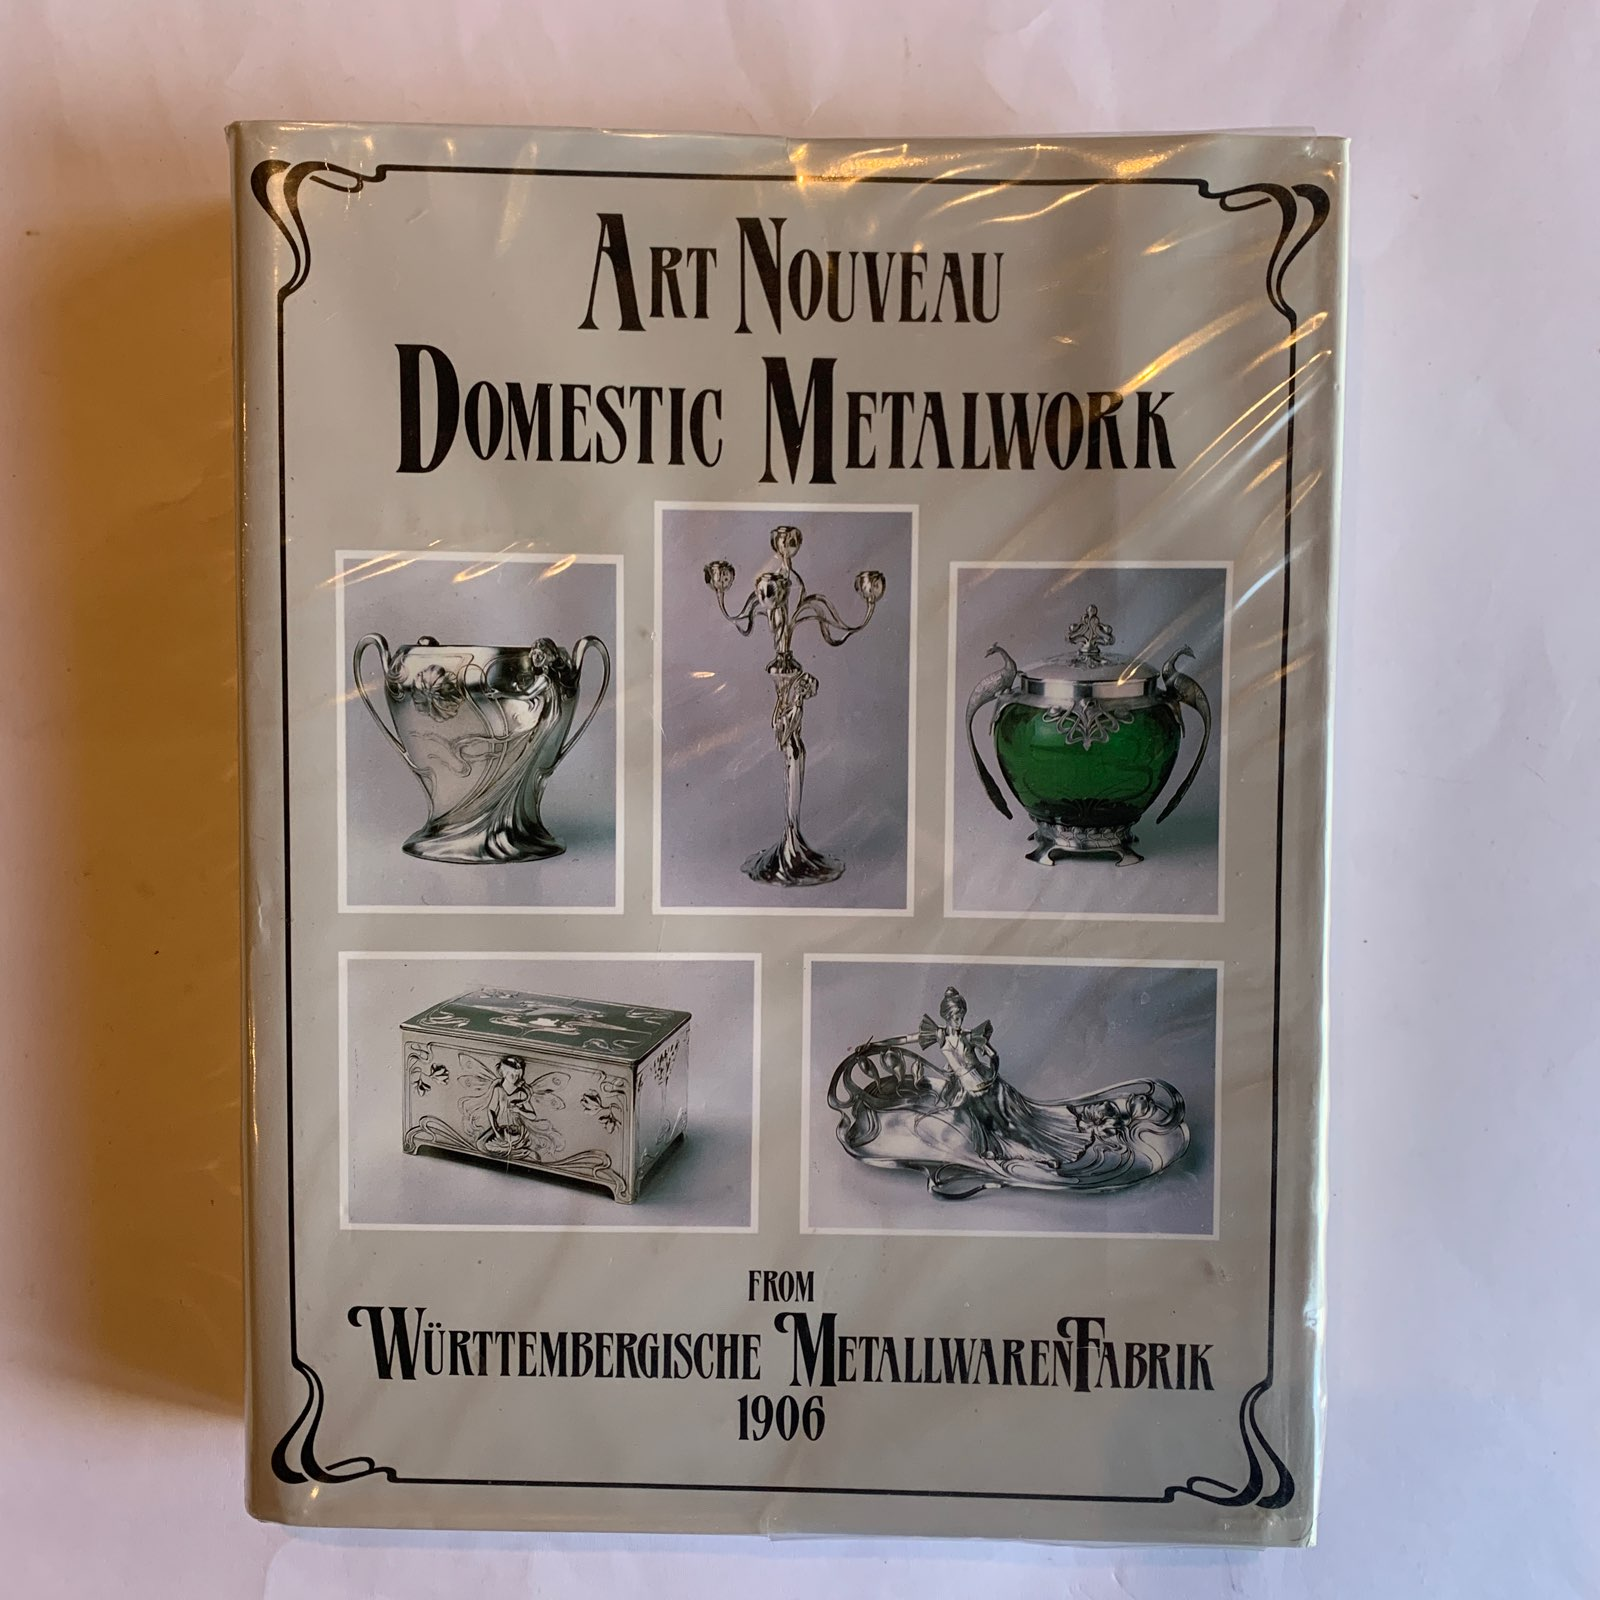 Book Art Nouveau Domestic Metalwork From Wmf Wurttembergische Metallwarenfabrik The English Catalogue 1906 Hardcover Artedeco Online Antiques